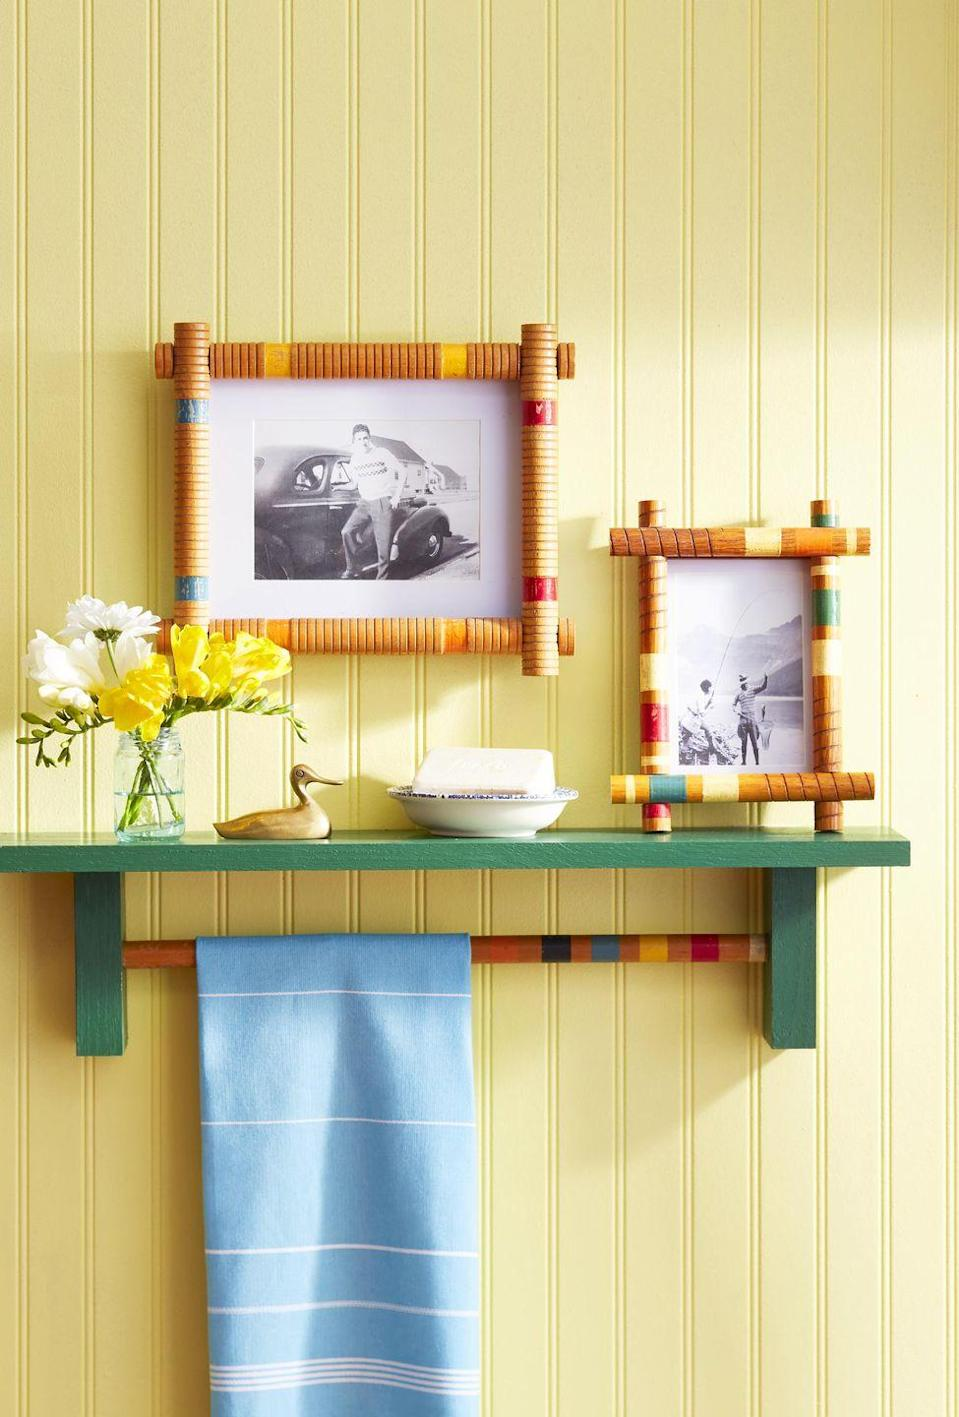 """<p>Colorful and poppy, these DIY frames will look great in a cabin or kids room. <strong><br></strong></p><p><strong>To make: </strong>For an 8 1/2-by-11-inch """"frame,"""" cut four pieces from croquet mallet handles, two 10 1/2 inches long and two 12 1/2 inches long. Chisel a small rectangle the width of the mallet near the ends of the long lengths for the short lengths to rest in. Glue the four pieces together, then to a frame. For a 5-by-7-inch frame, cut the handles to7 inches and 9 inches.</p>"""